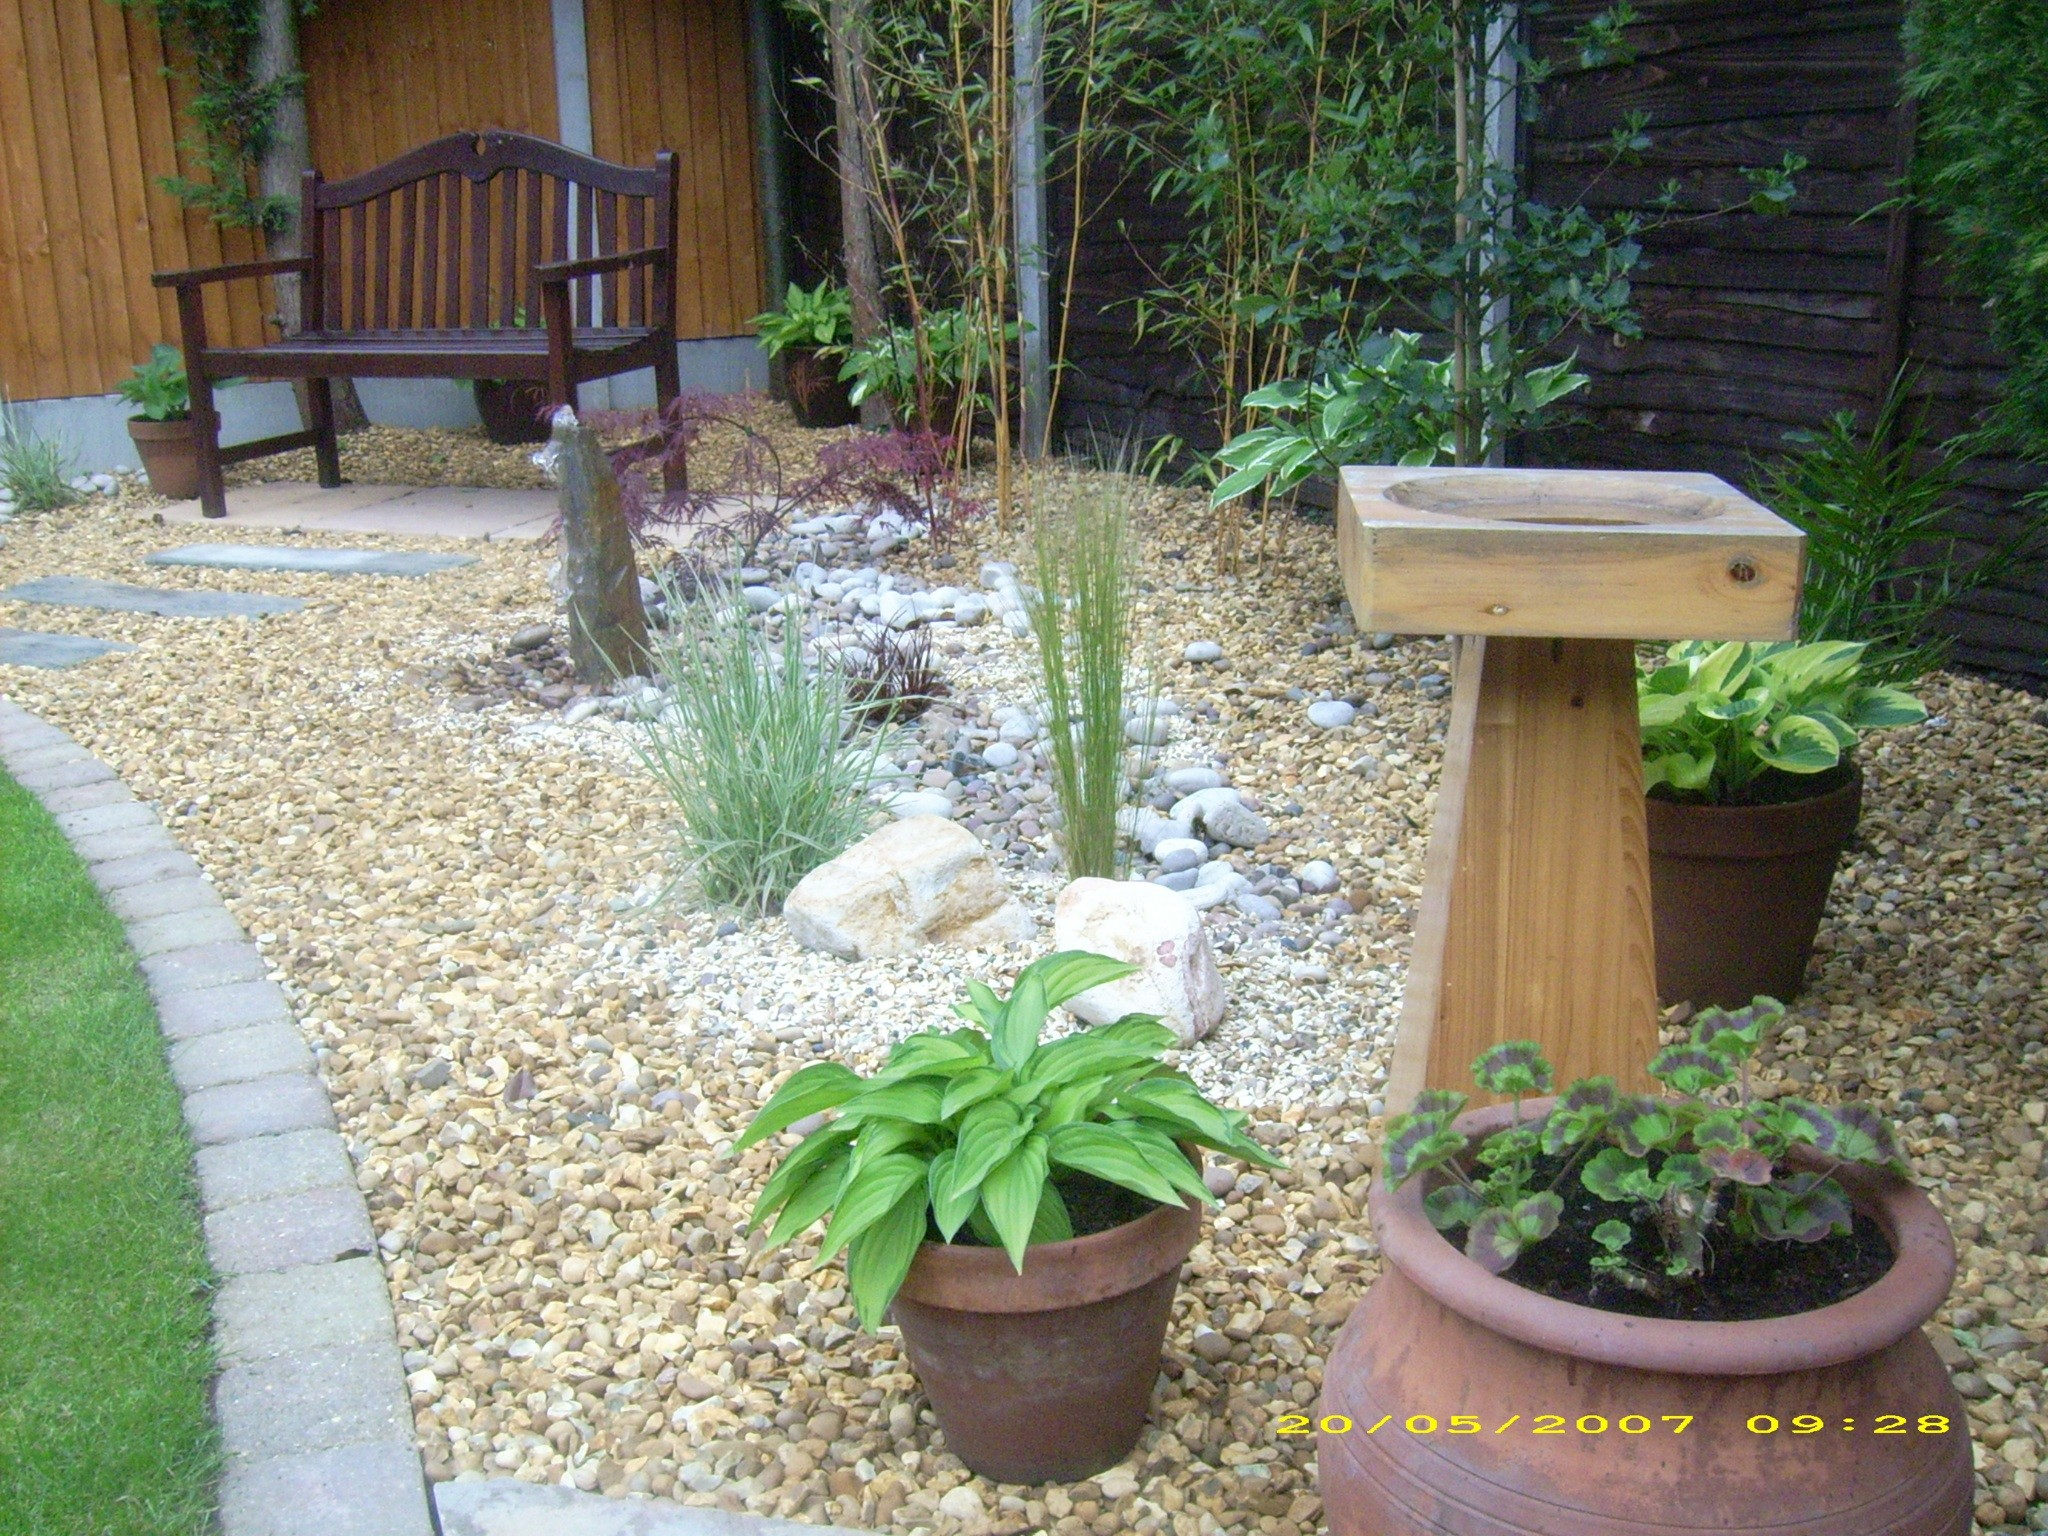 garden planters victoria bc with Images Of Low Maintenance Gardens on Location Is Key For Downsizing Active Seniors furthermore More Cool Garden Pots And Planters Sydney Trend furthermore More Cool Garden Pots And Planters Sydney Trend as well 412128 Approach Chart Minimun Altitud Interpretation also Images Of Low Maintenance Gardens.